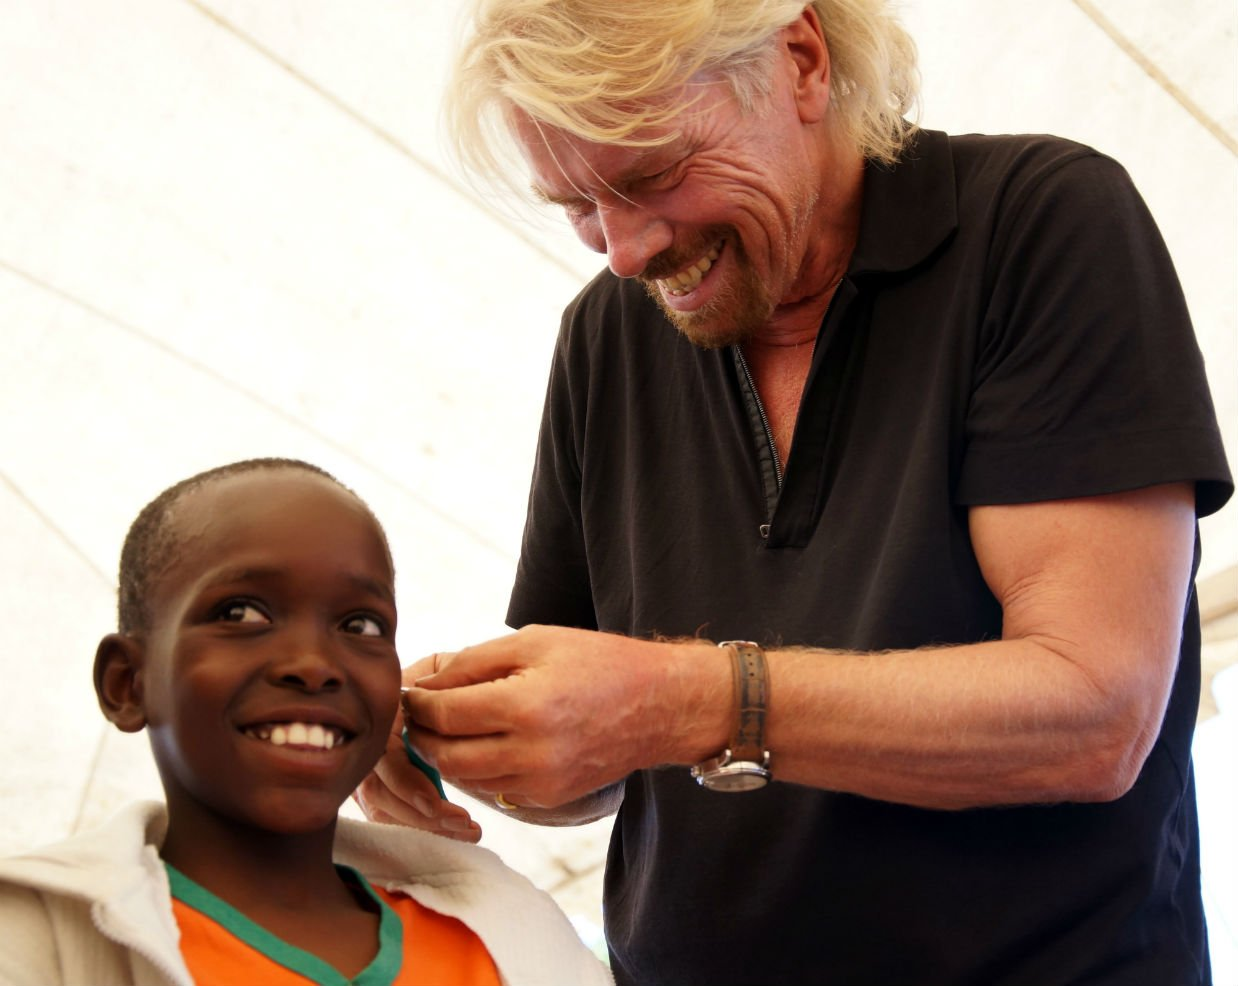 Having witnessed the effect that hearing loss has had on South Africans with AIDS, The Starkey Hearing Foundation is working to bring change through the ...